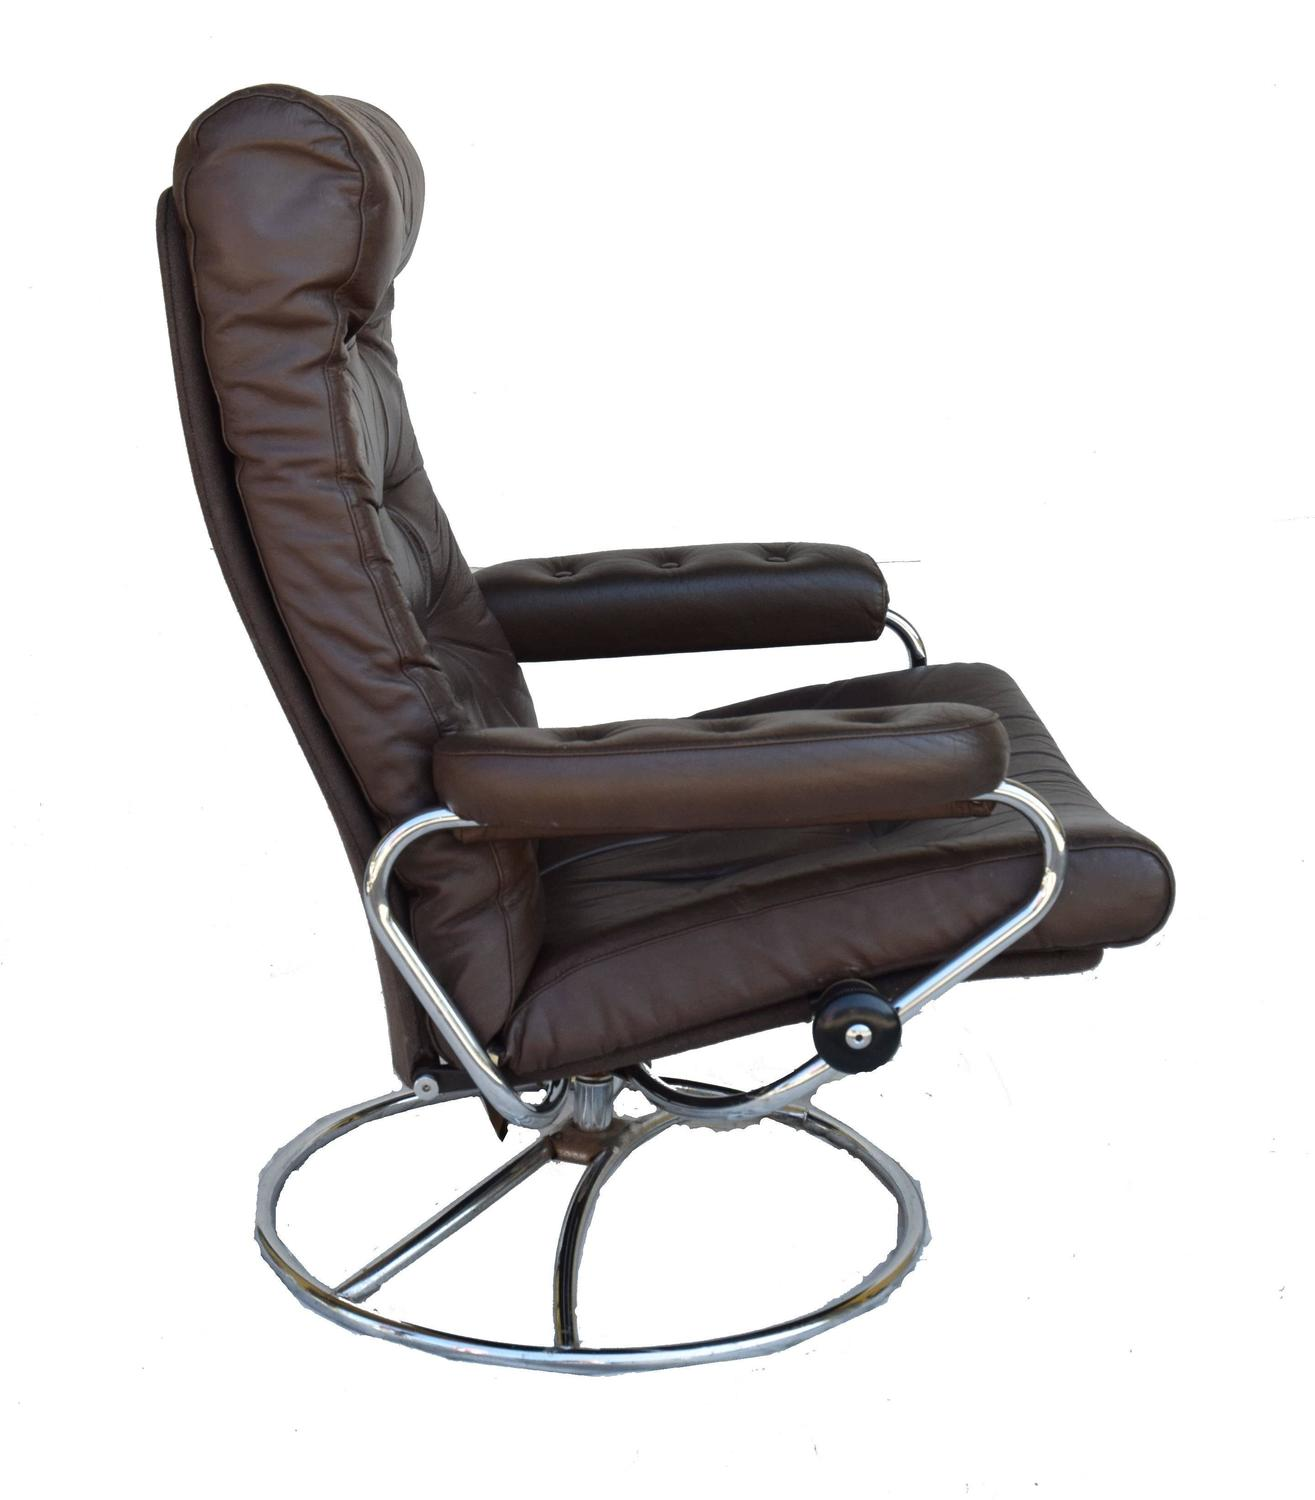 Z Chairs Sale Ekornes Stressless Chair And Ottoman 1972 For Sale At 1stdibs